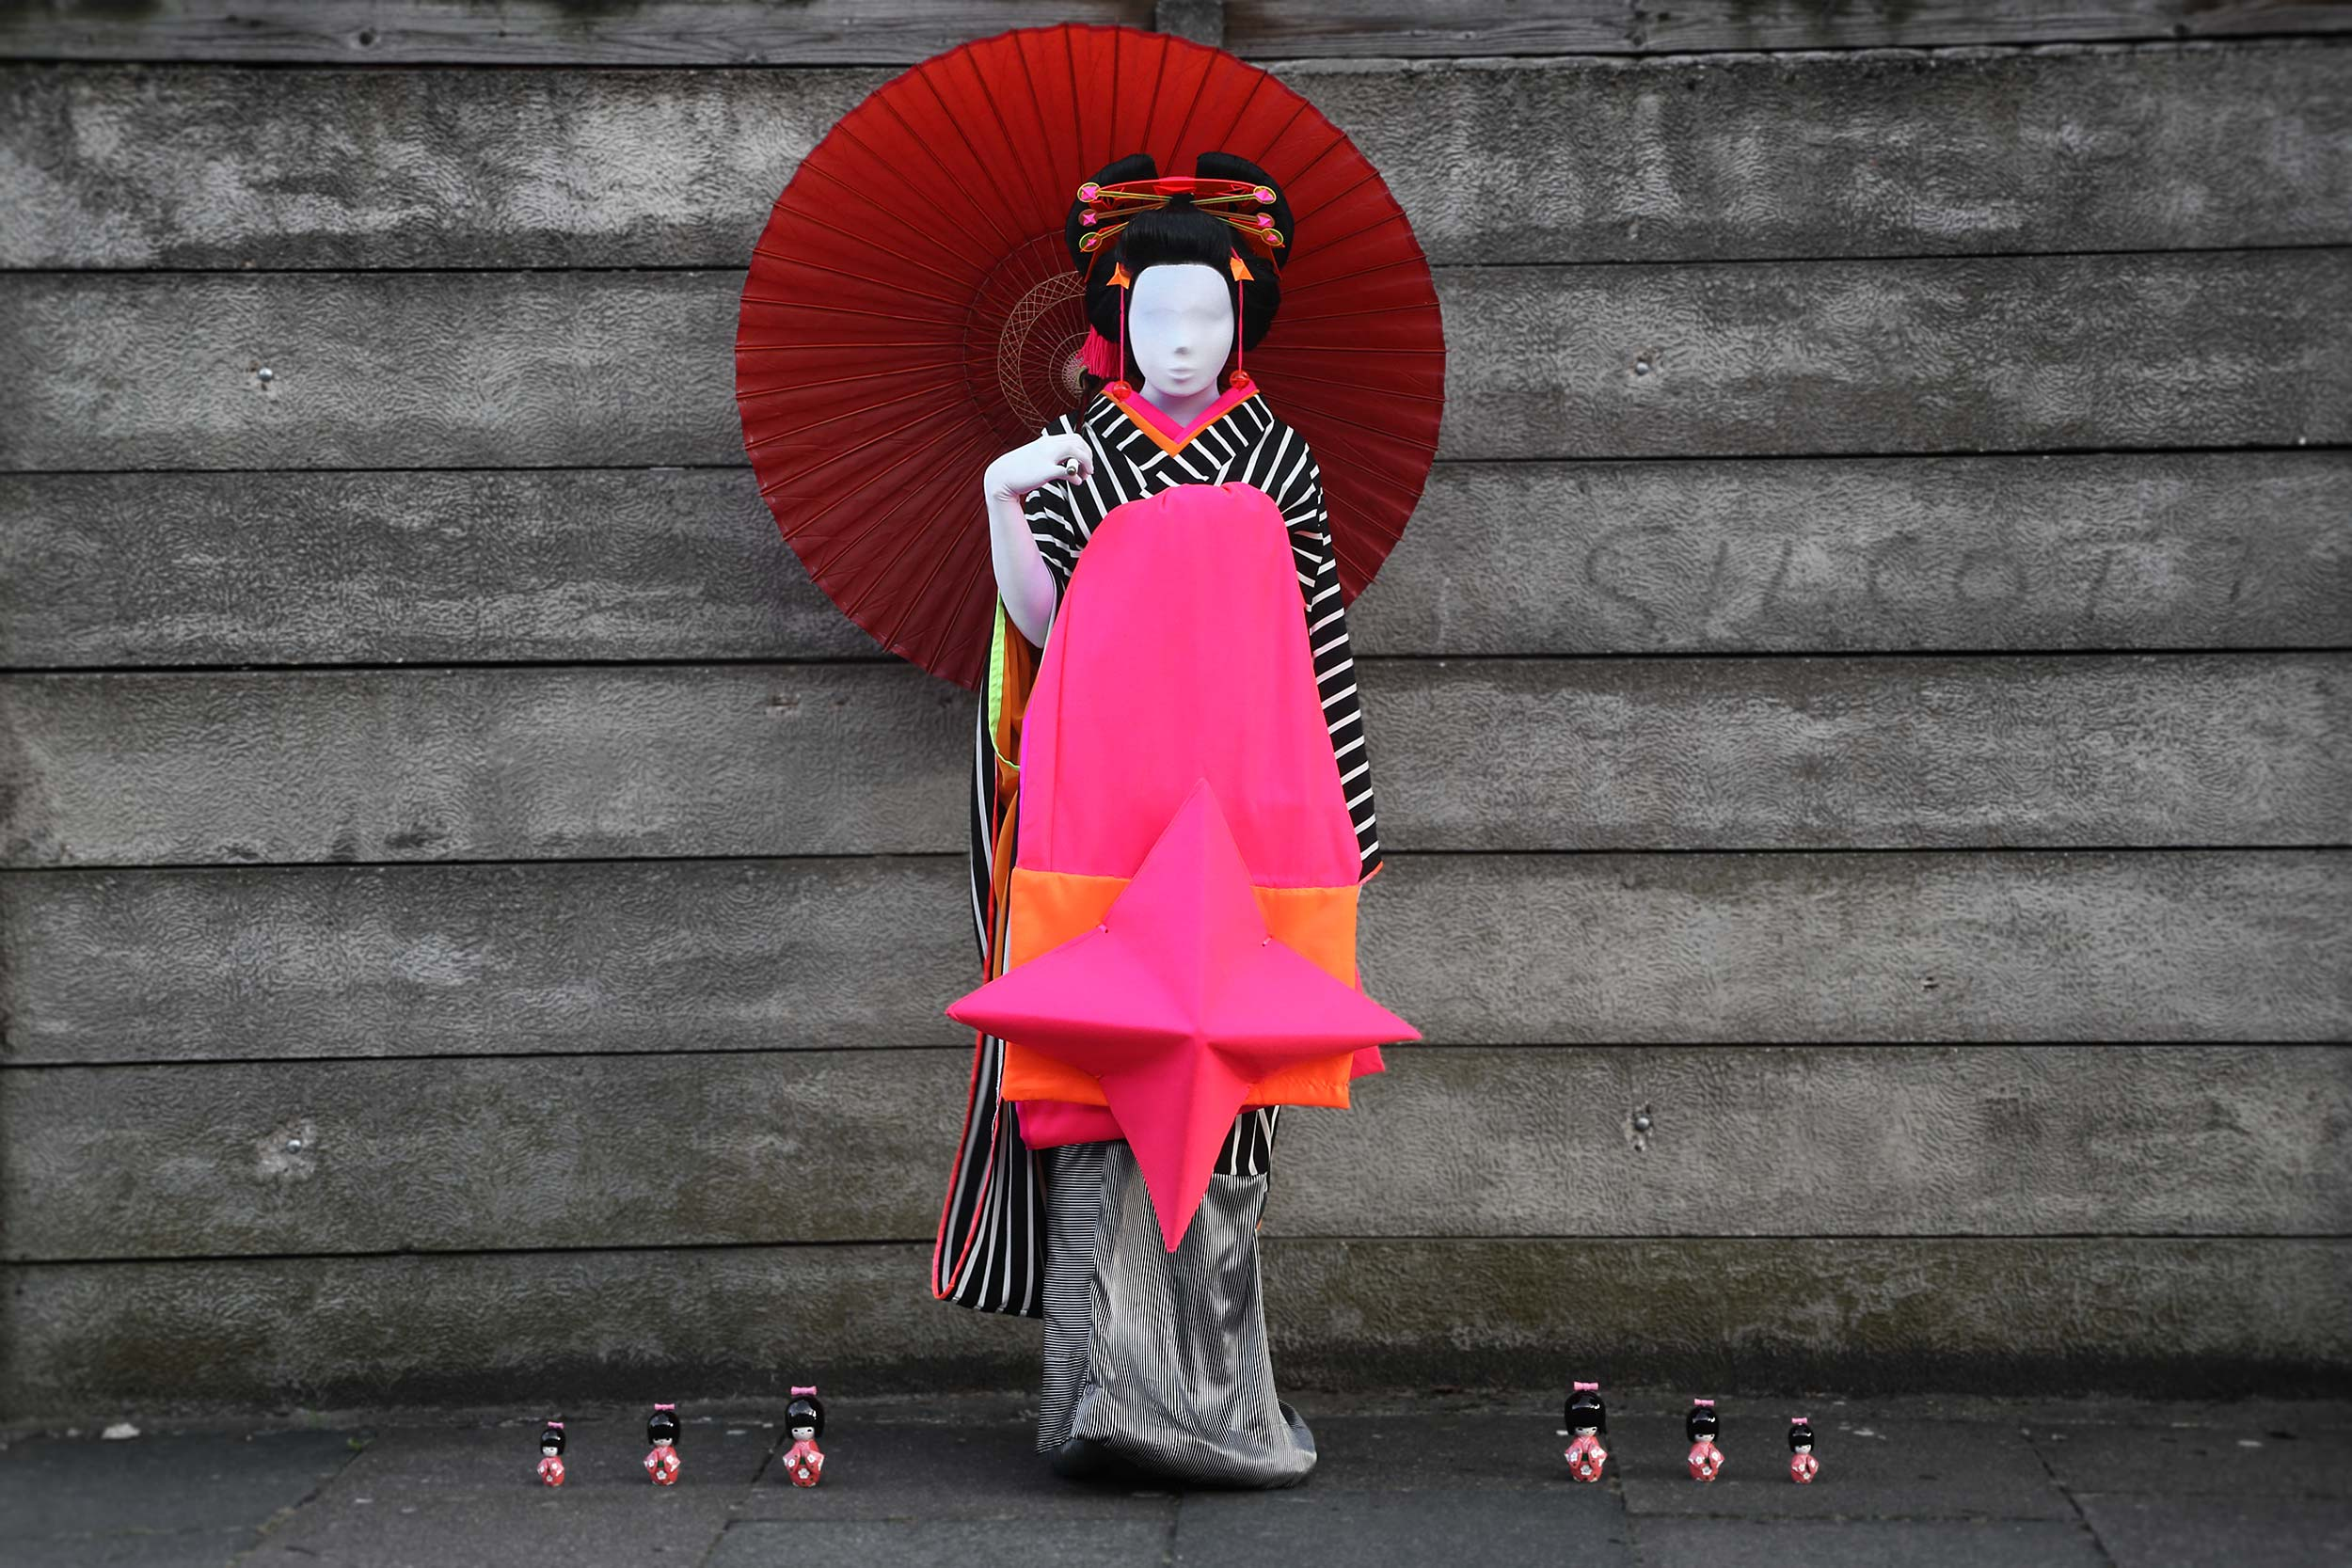 A woman dressed as a cyberpunk version of a japanese oiran holds a large red paper umbrella, stands with traditional kokeshi dolls by her side.